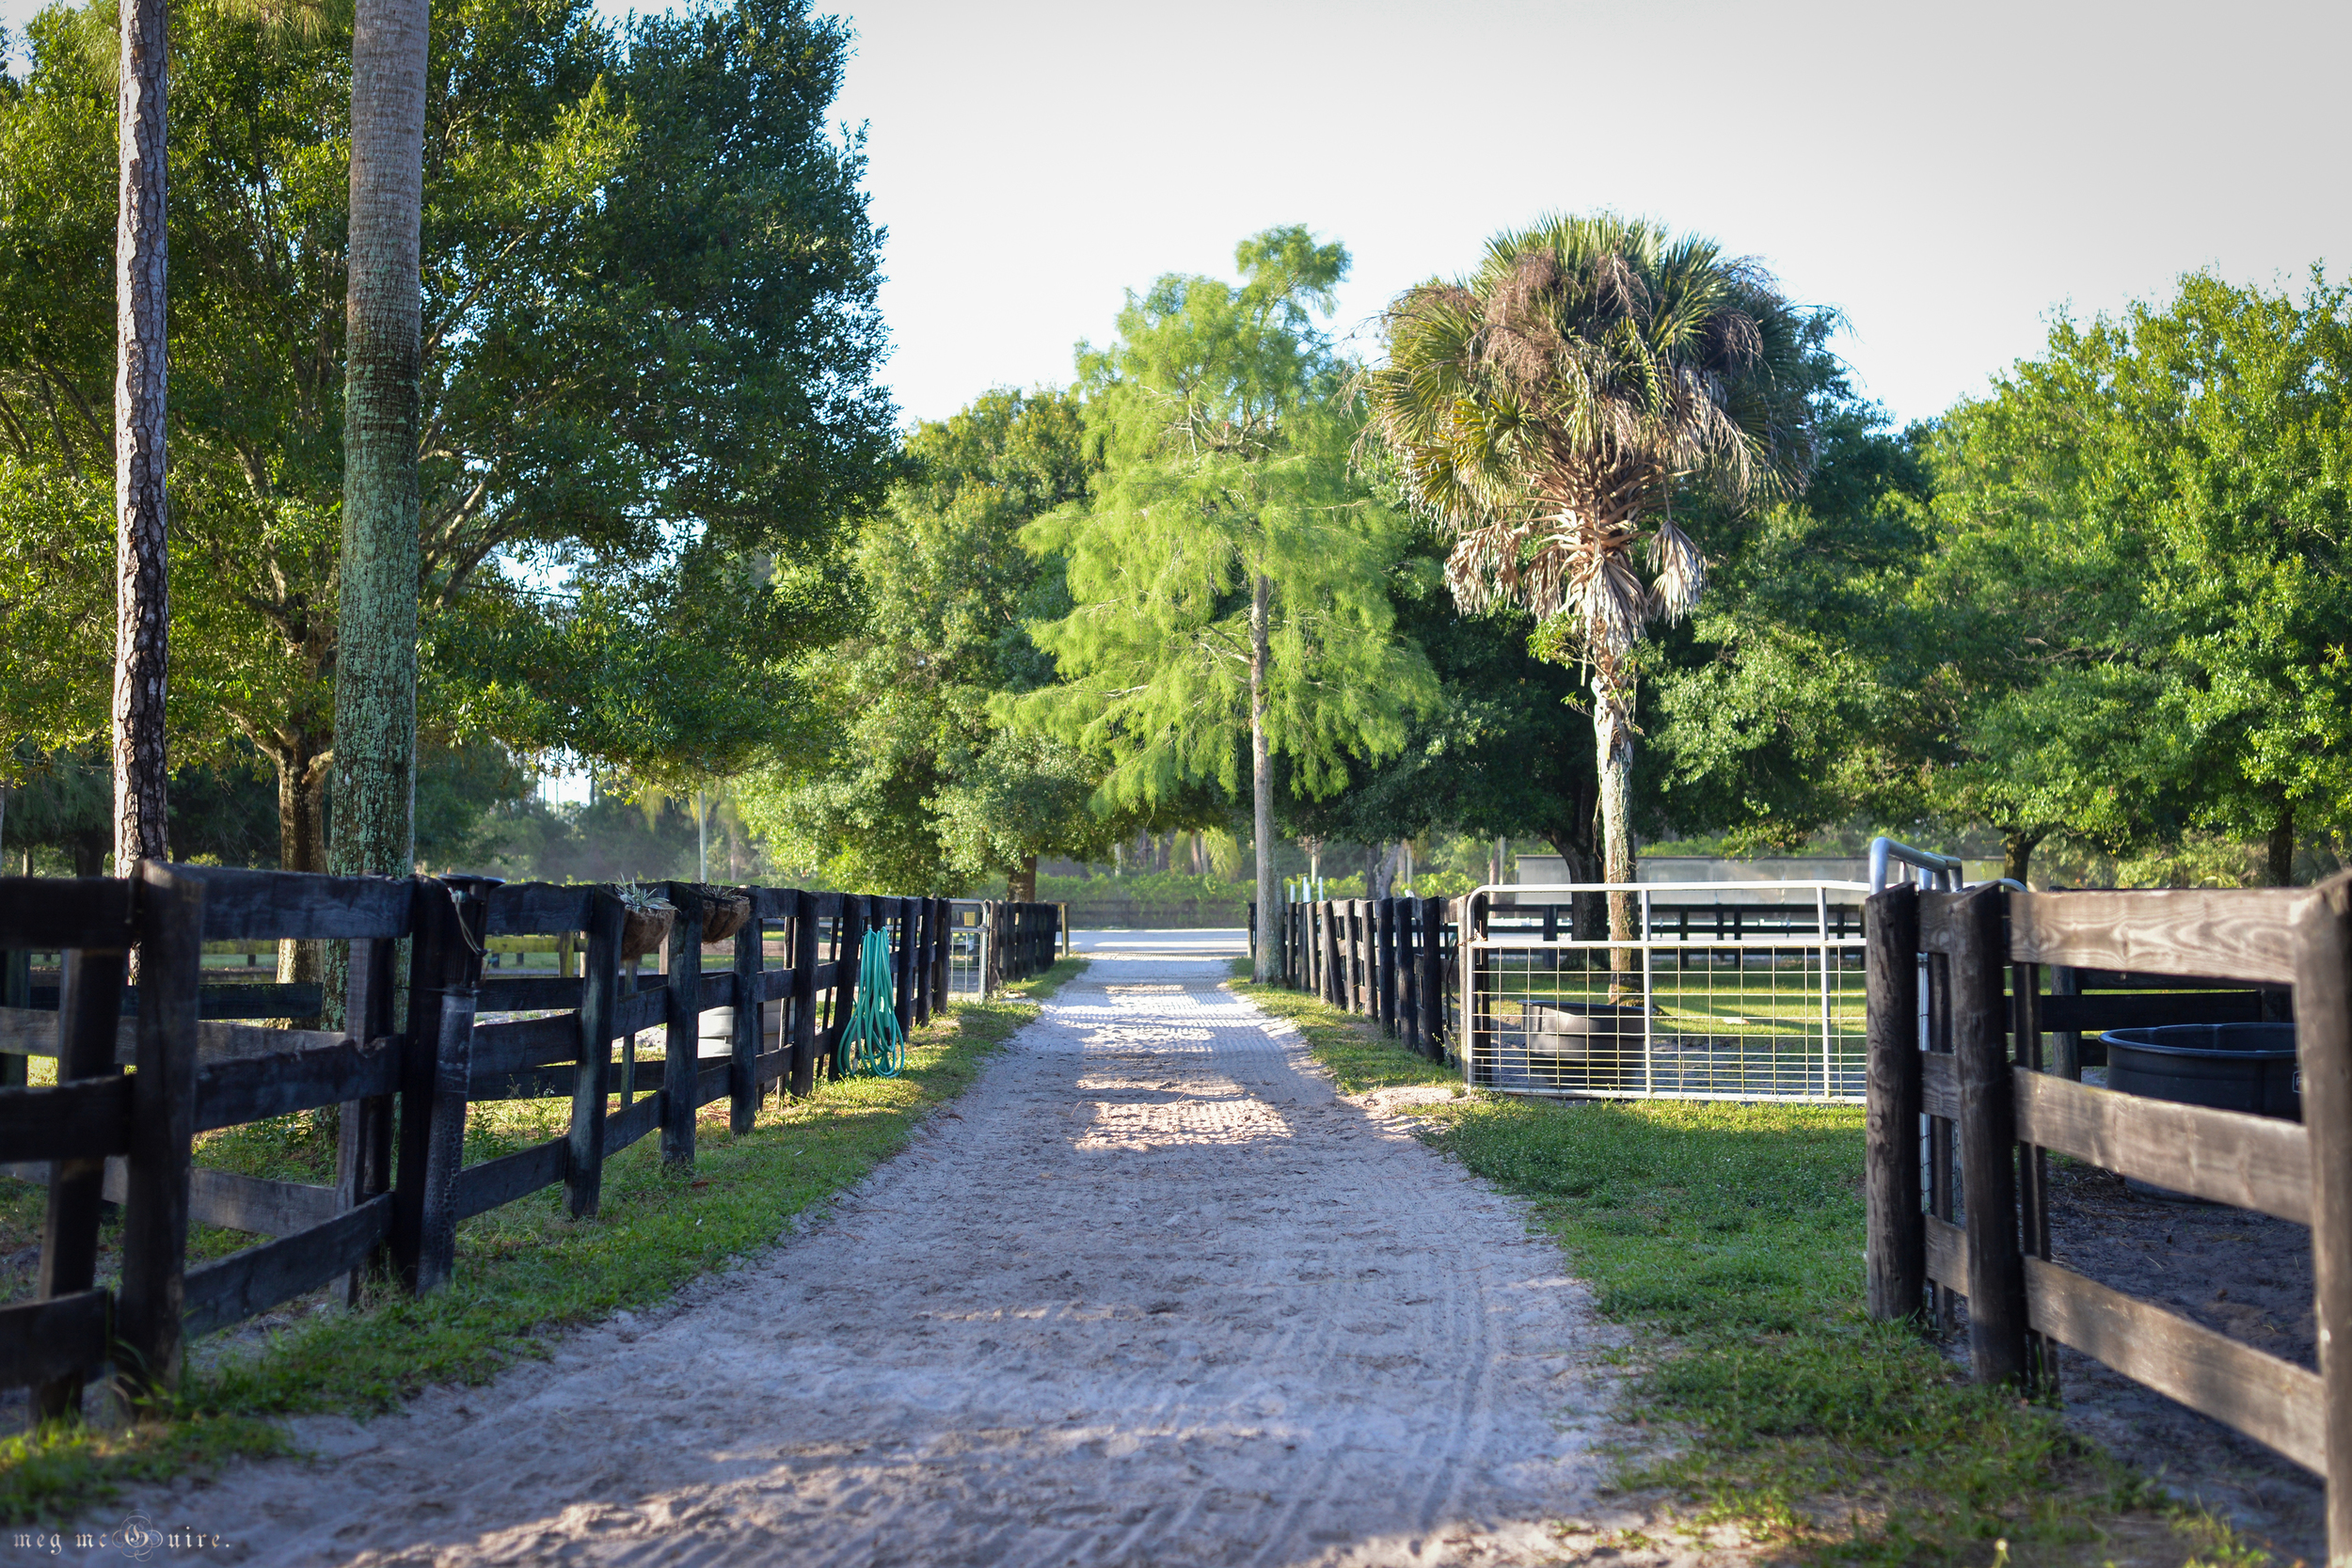 View from the barn leading down to the arena